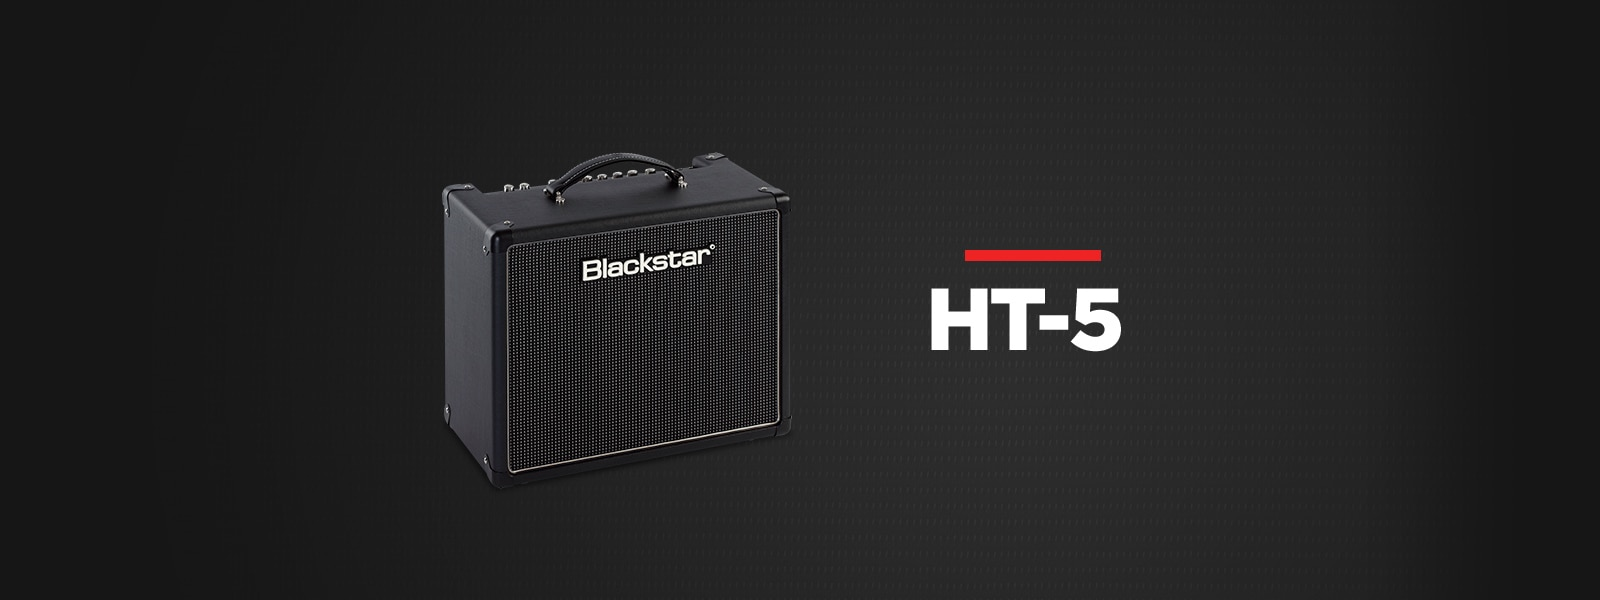 Blackstar HT-5 Series Amplifiers